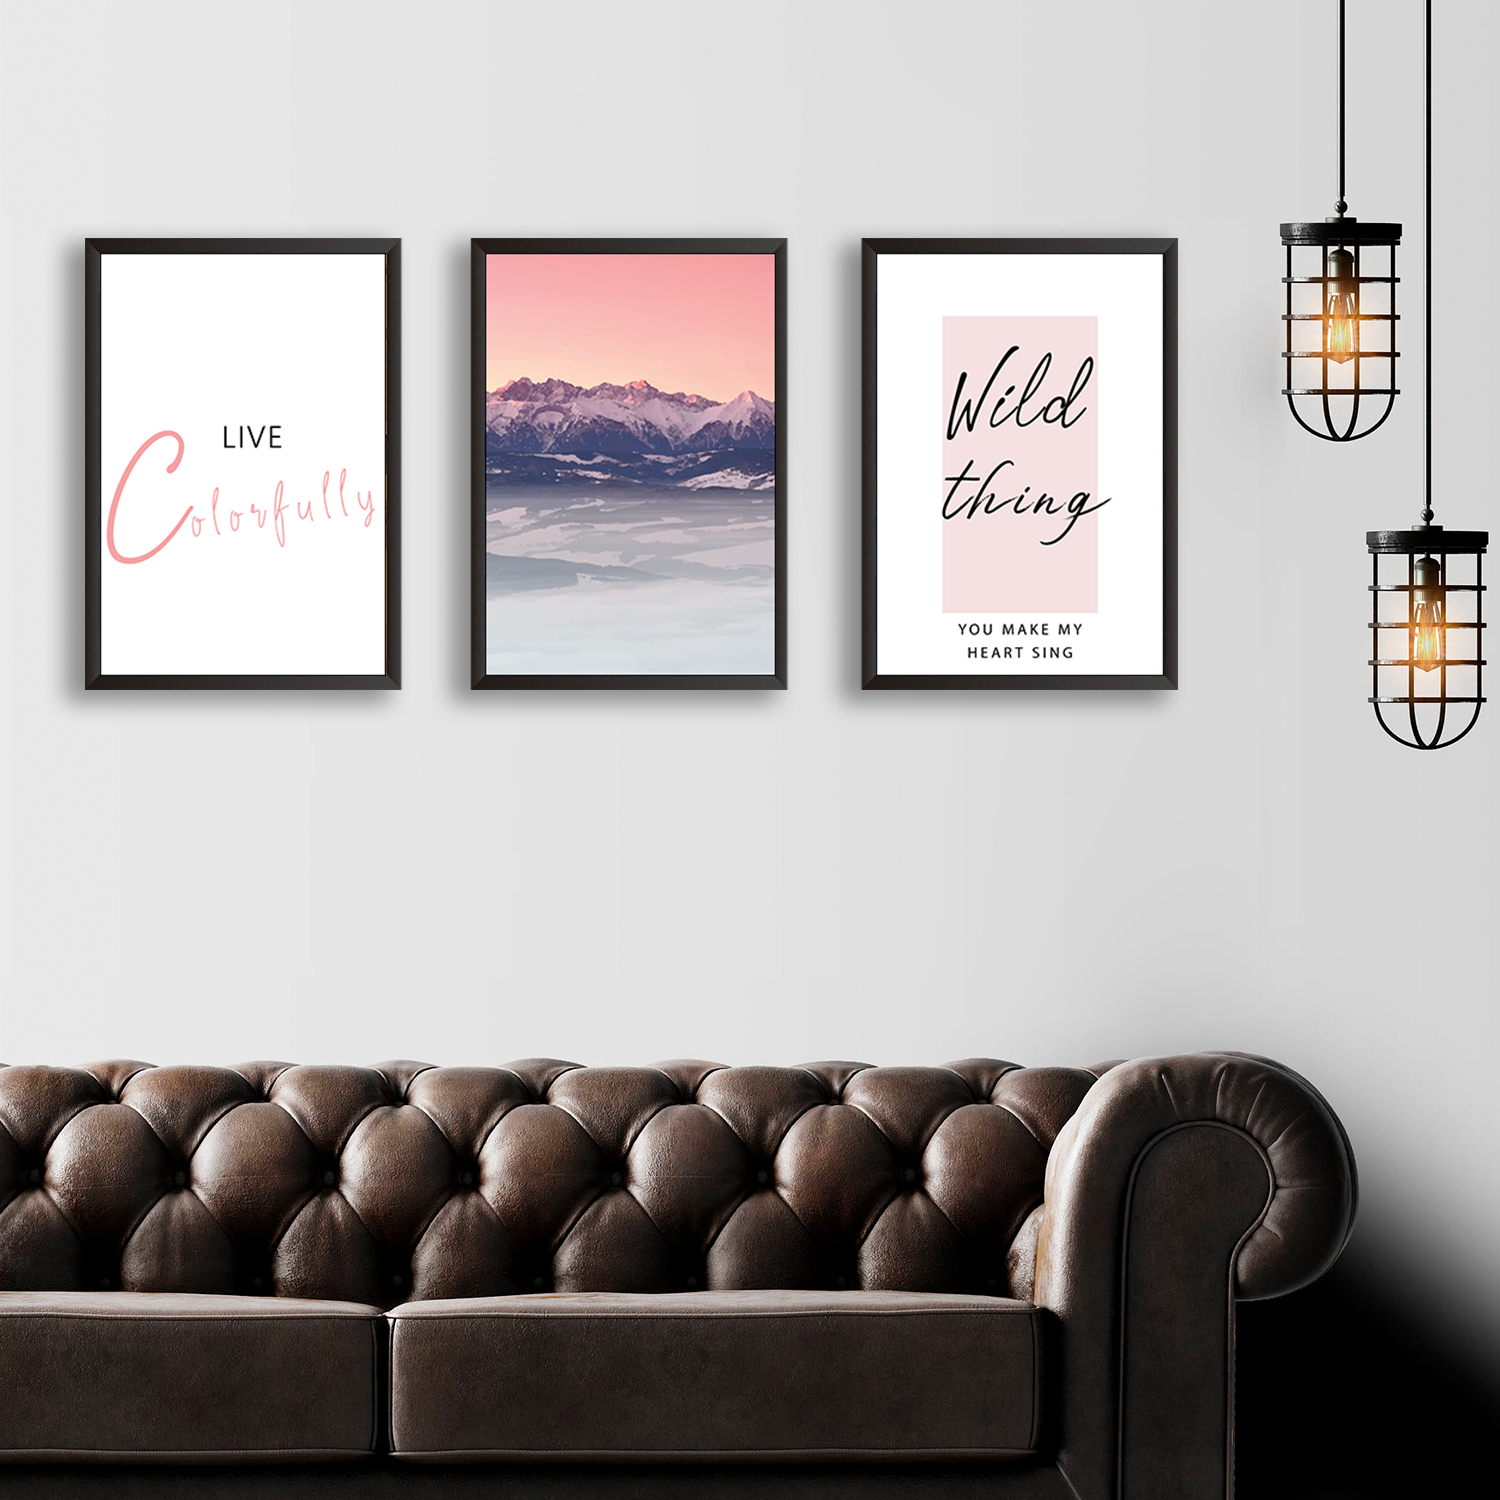 Live Colorfully - Set of 3 Frames